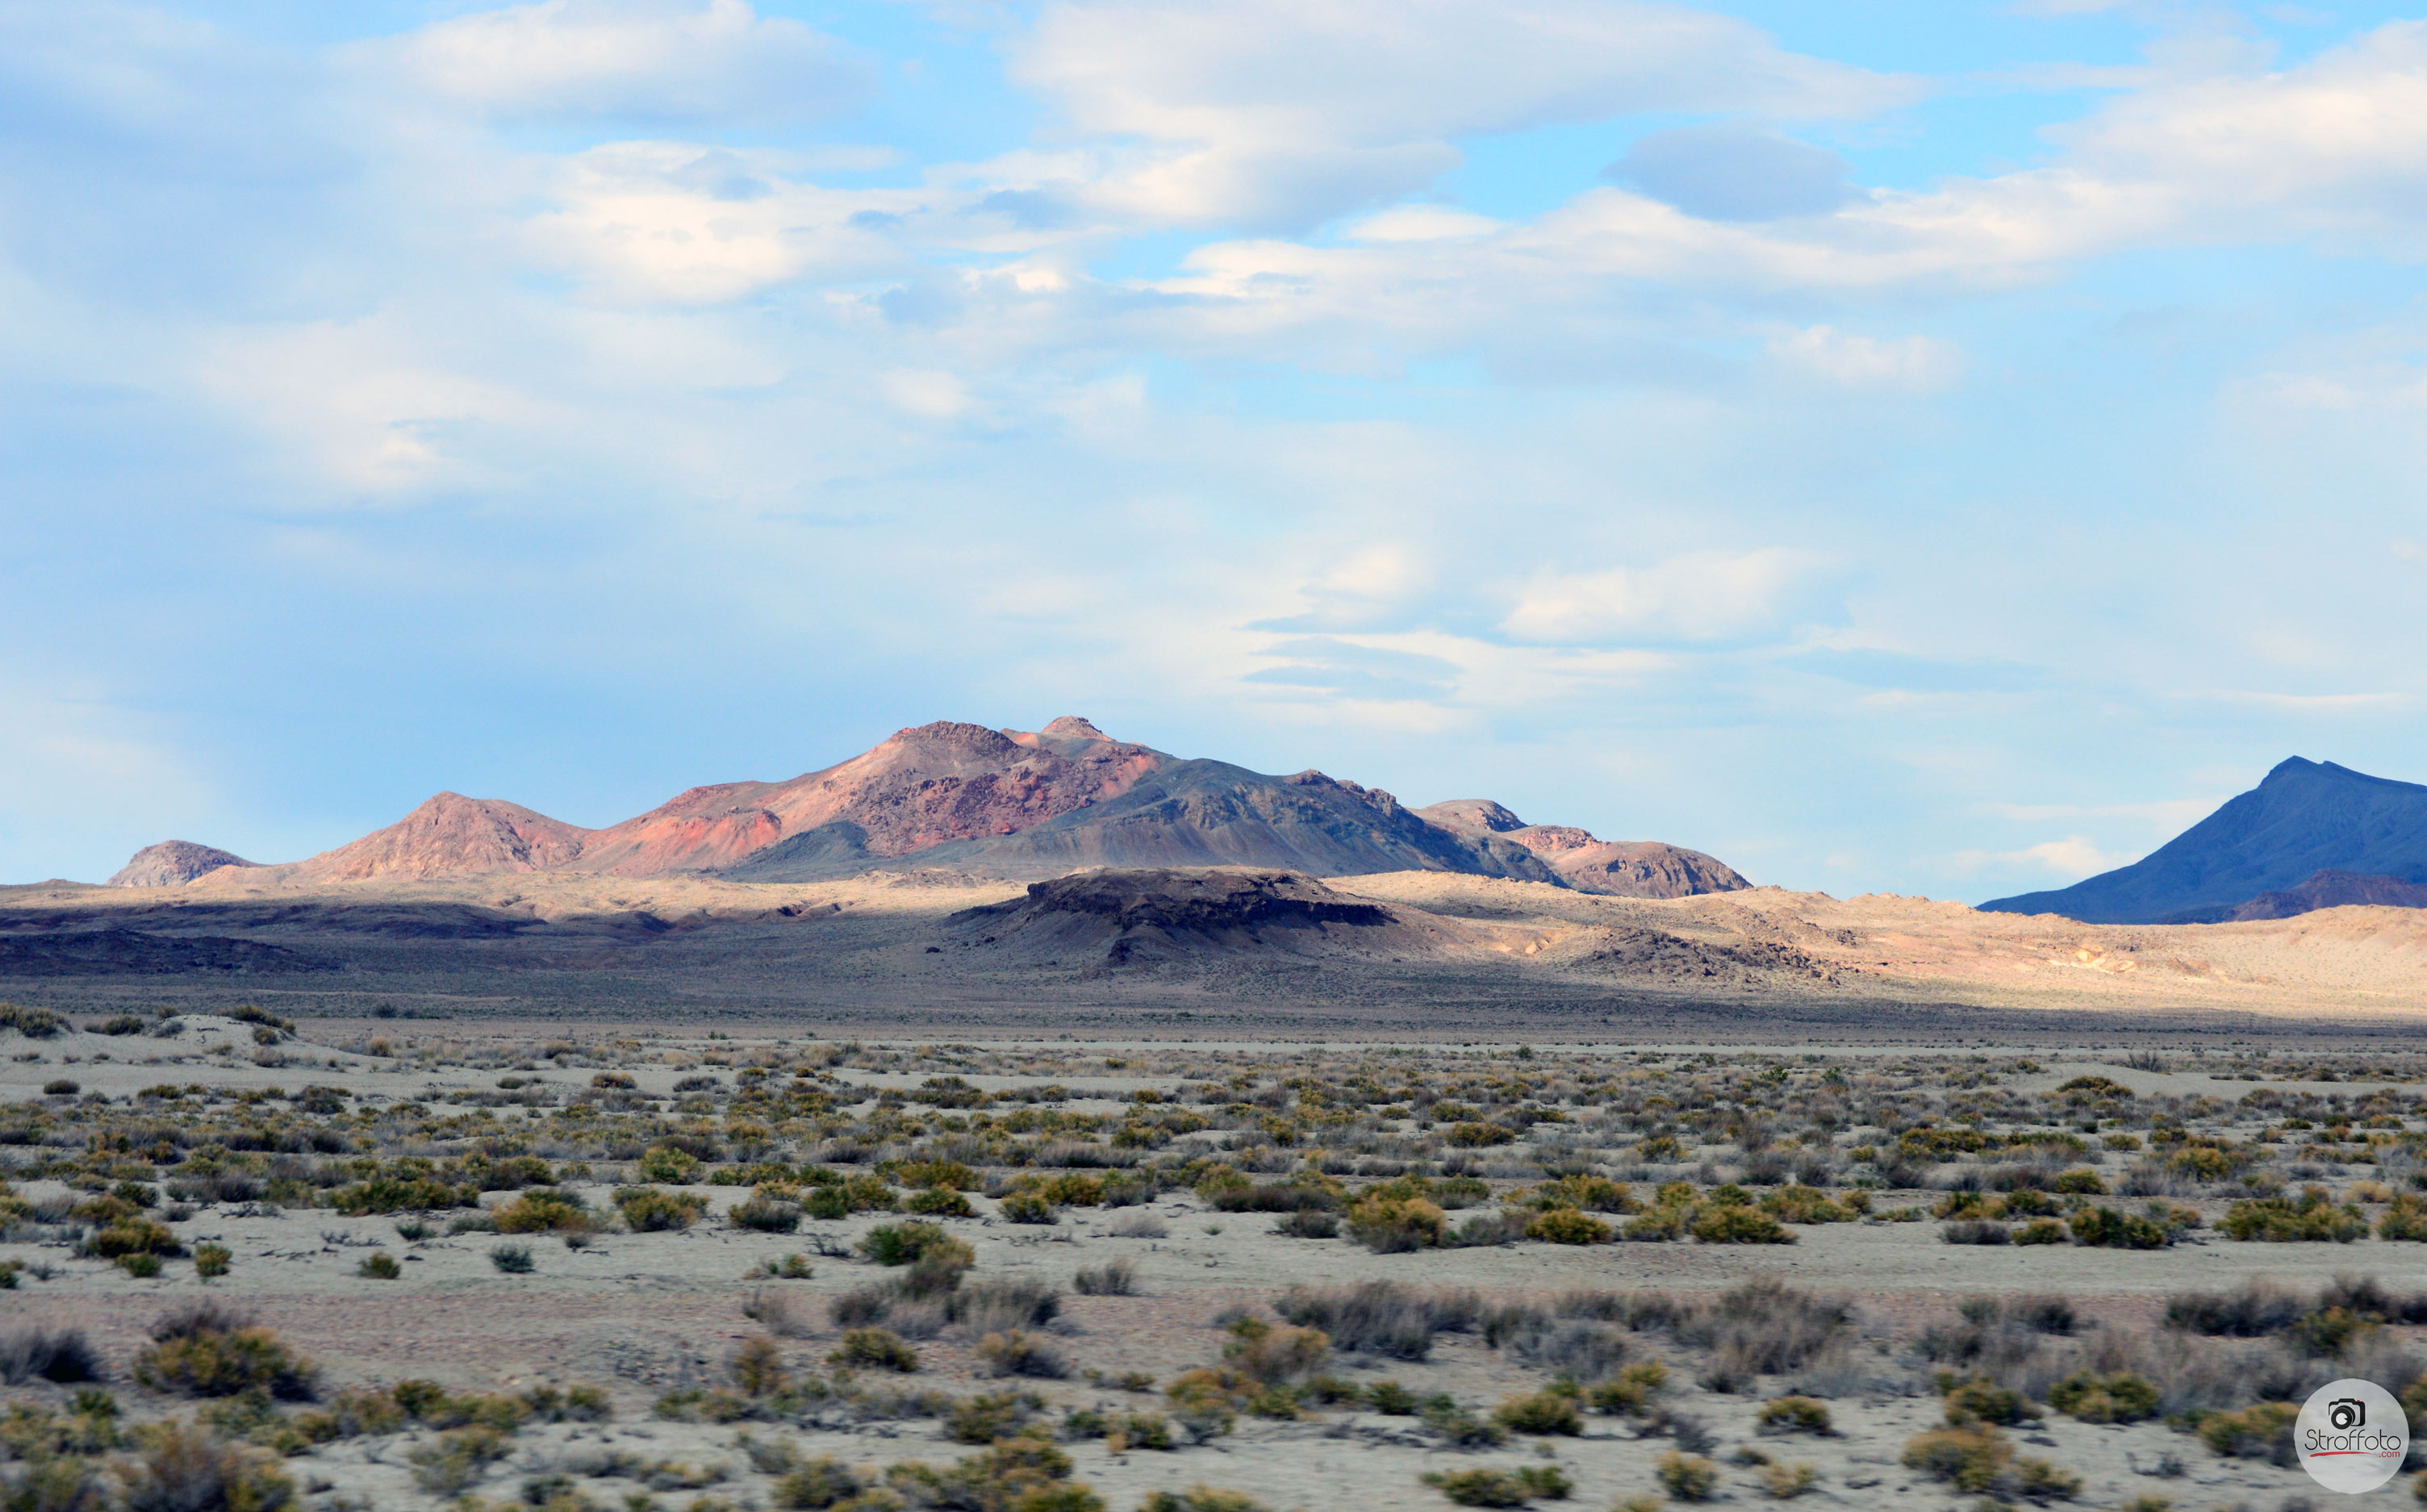 Day 19 - Road Trip 2014